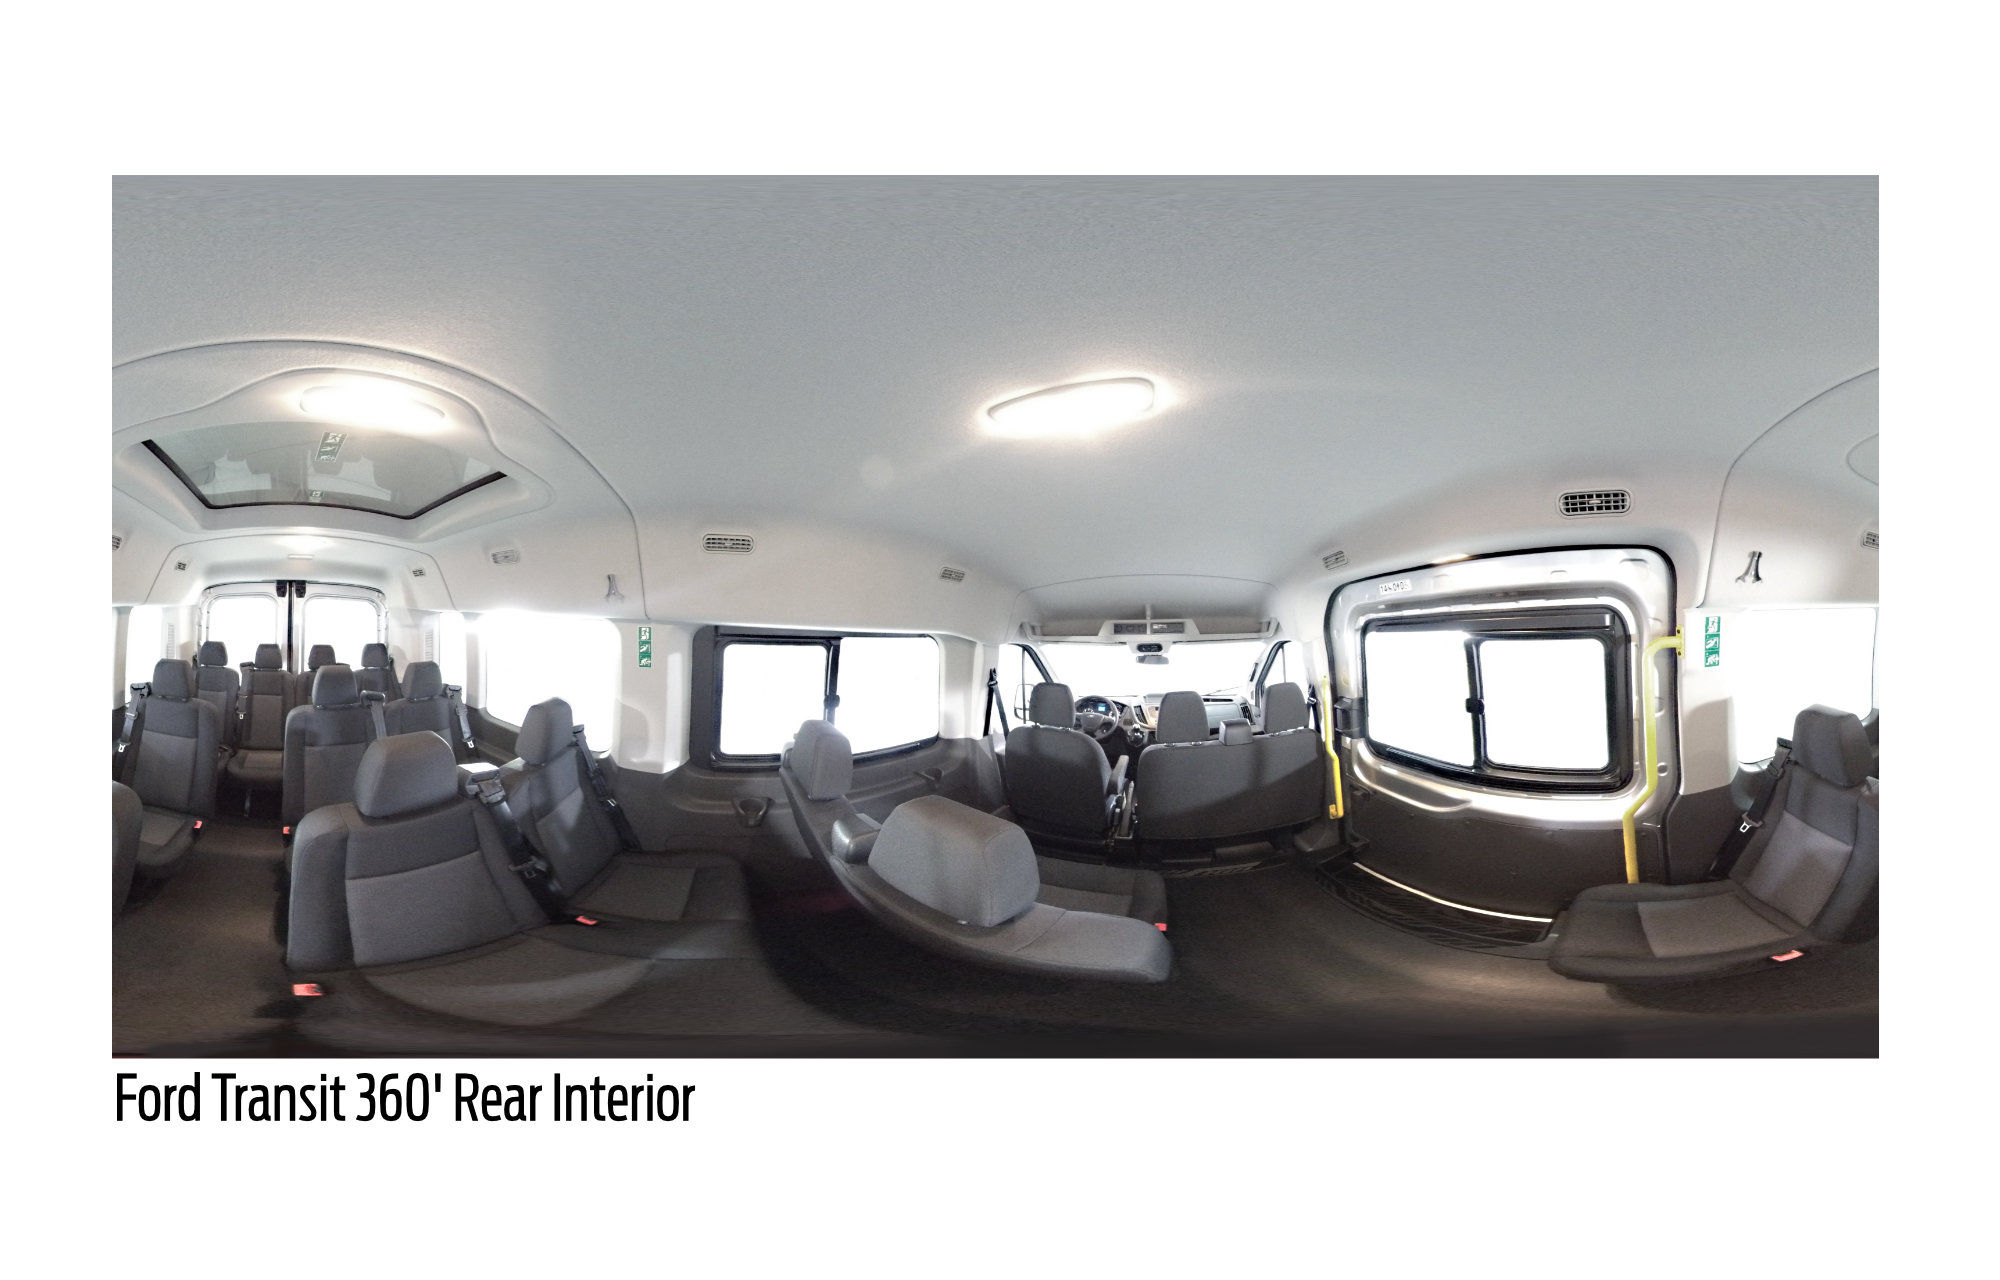 The Ford Transit spacious interior with enough room for 15 passengers.